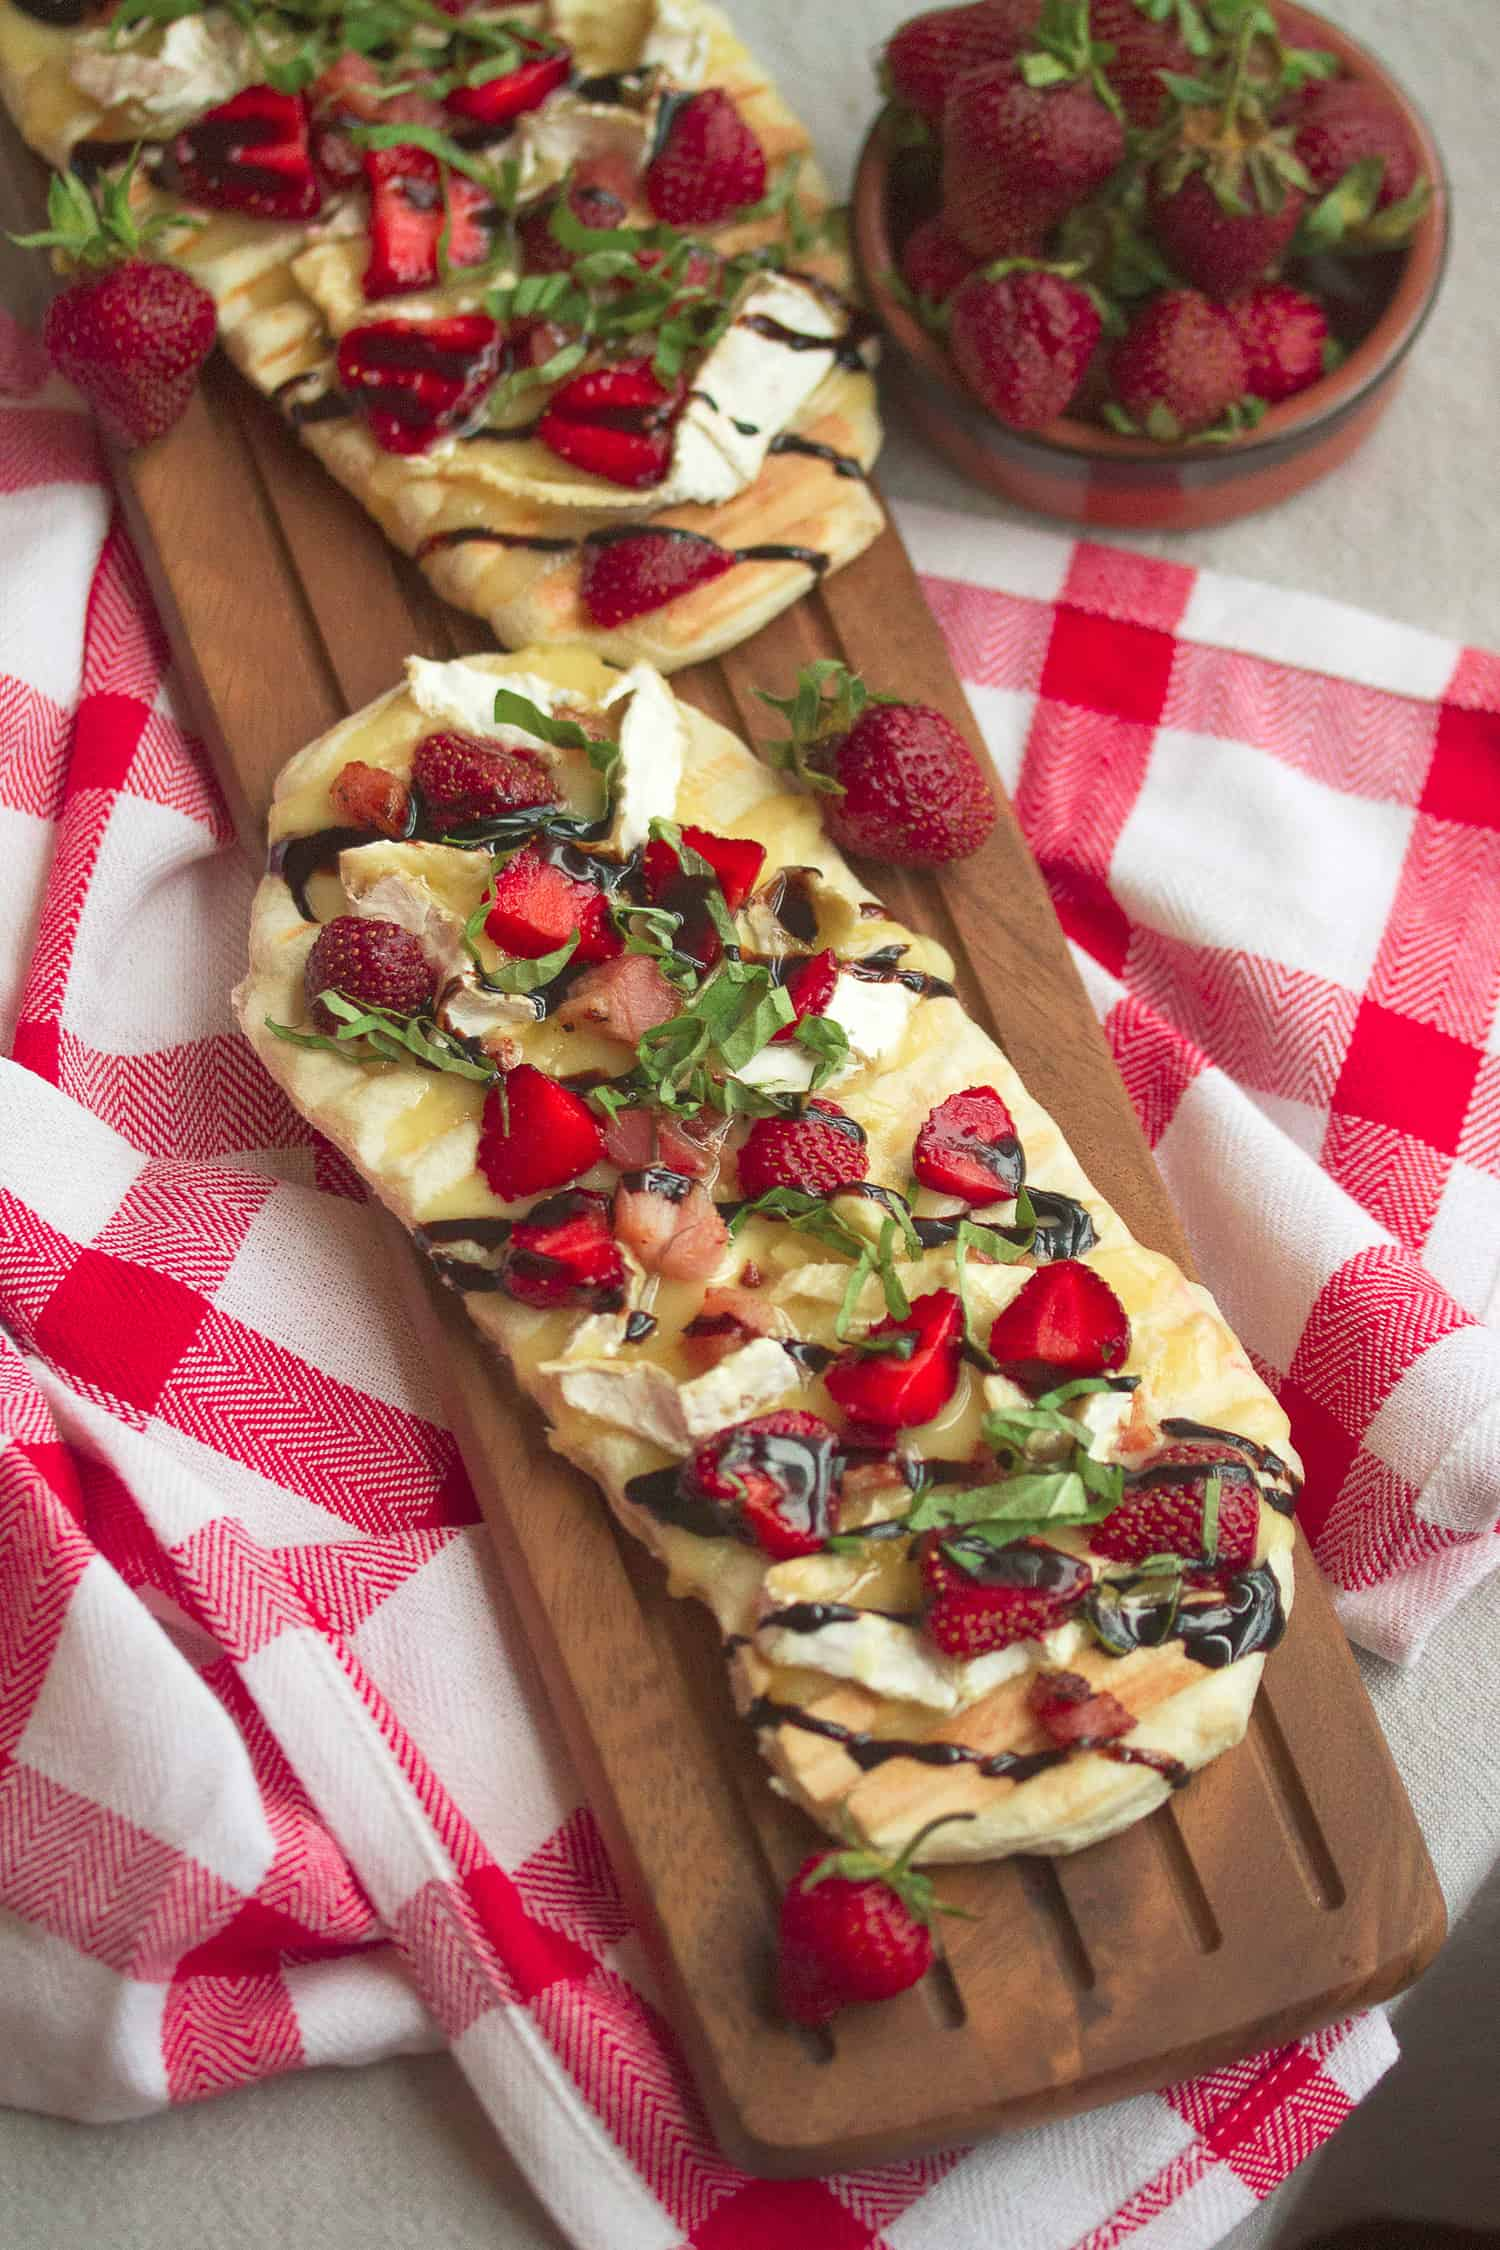 Grilled Strawberry and Camembert Flatbreads